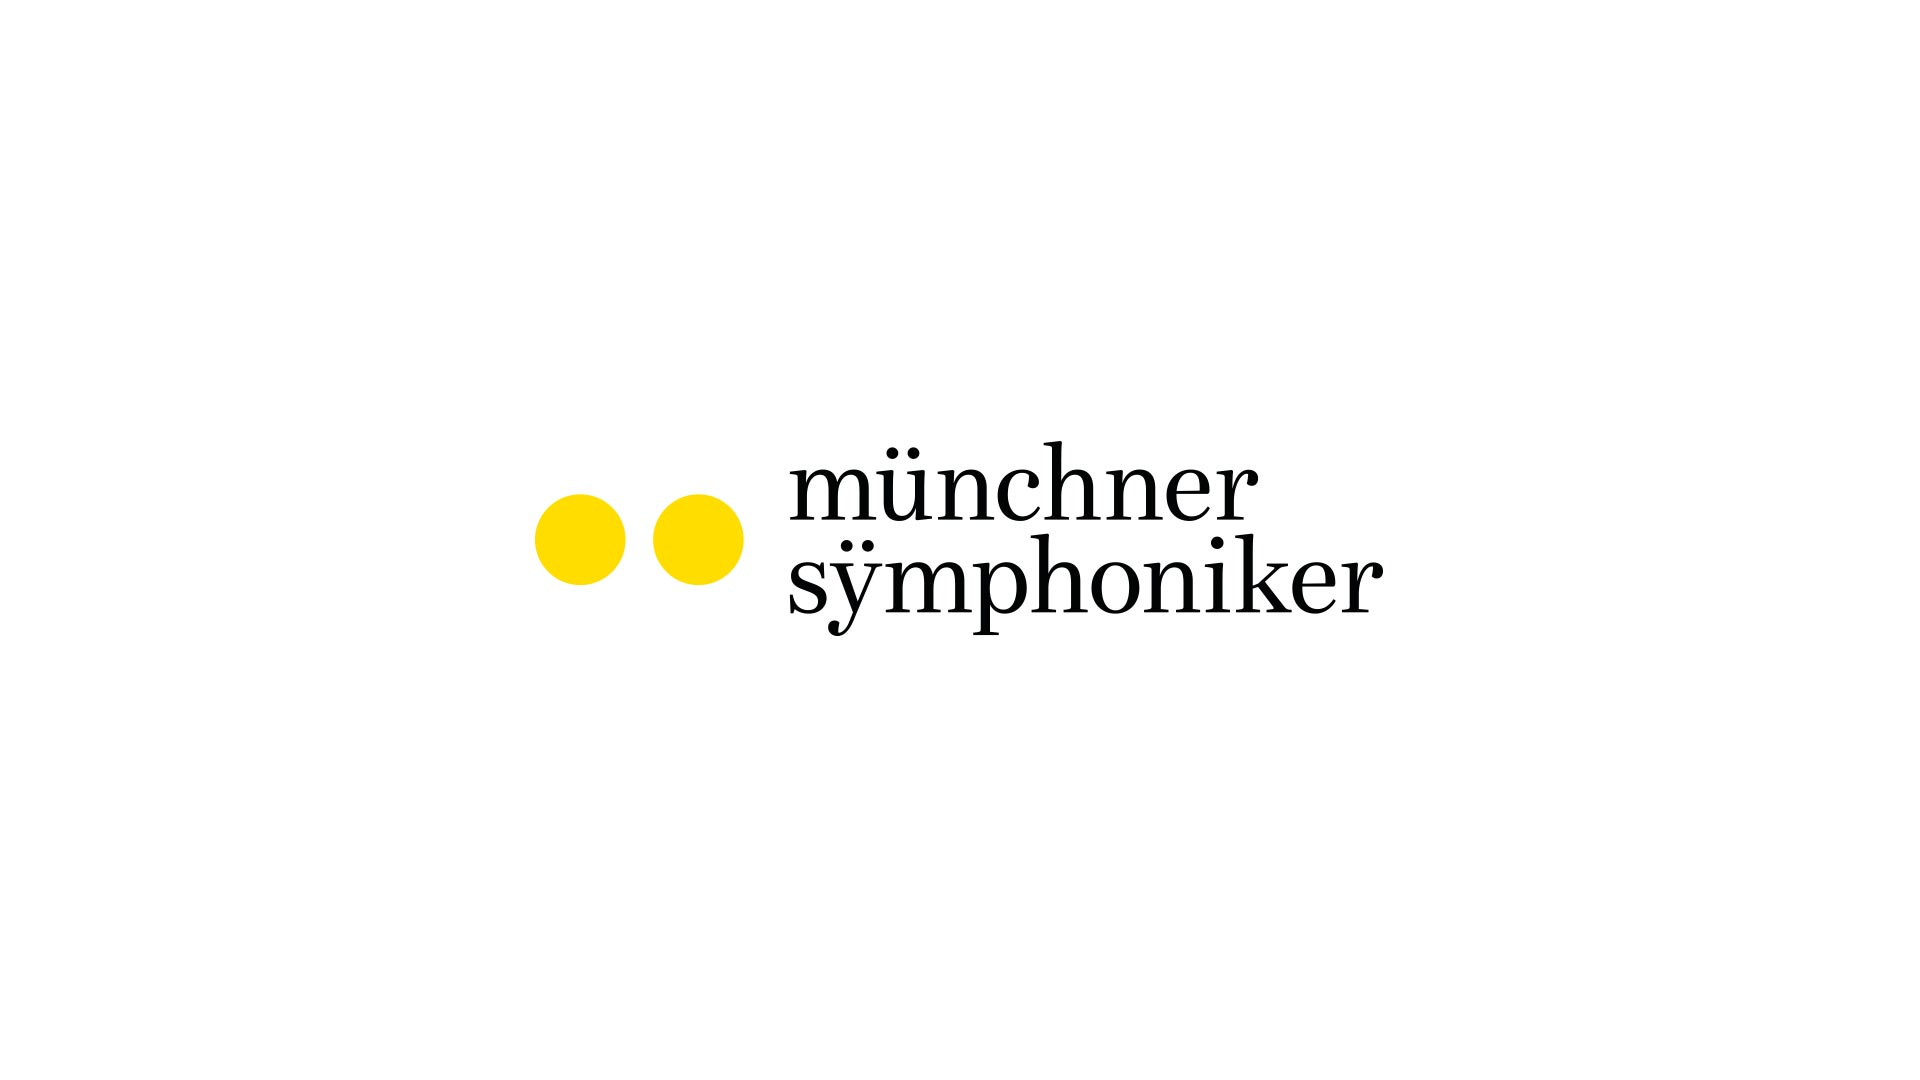 "The newly developed ""Münchner Symphoniker"" wordmark is onomatopoeia in the truest sense of the word. It emphasizes the umlaut above the ""u"", the diaeresis, to visualize the intonation of the word. The logo is reminiscent of a double beat of the drum. The type is based on ""Bressay"", a classic Antiqua typeface updated for digital use. It features charming drop-shaped accents, creating a playful, yet elegant look."